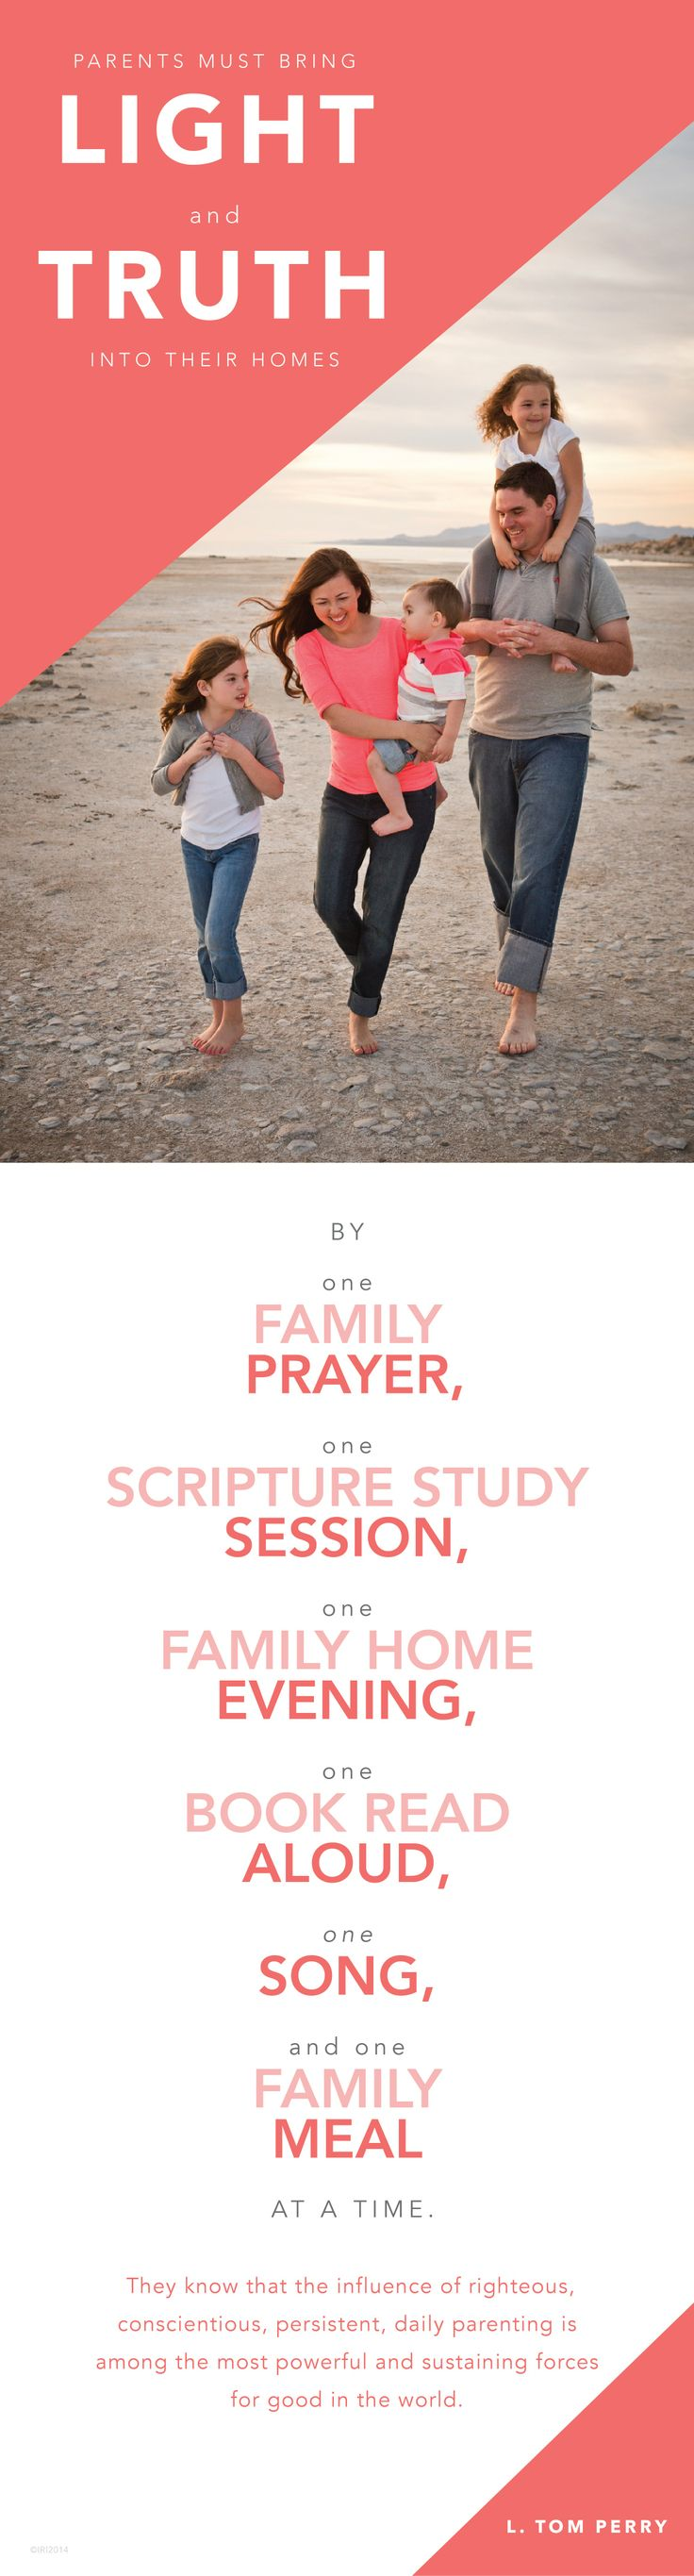 Parents bring light and truth into their homes one family prayer, one  session studying the scriptures, one FHE, one song, and one homemade dinner  at a time.